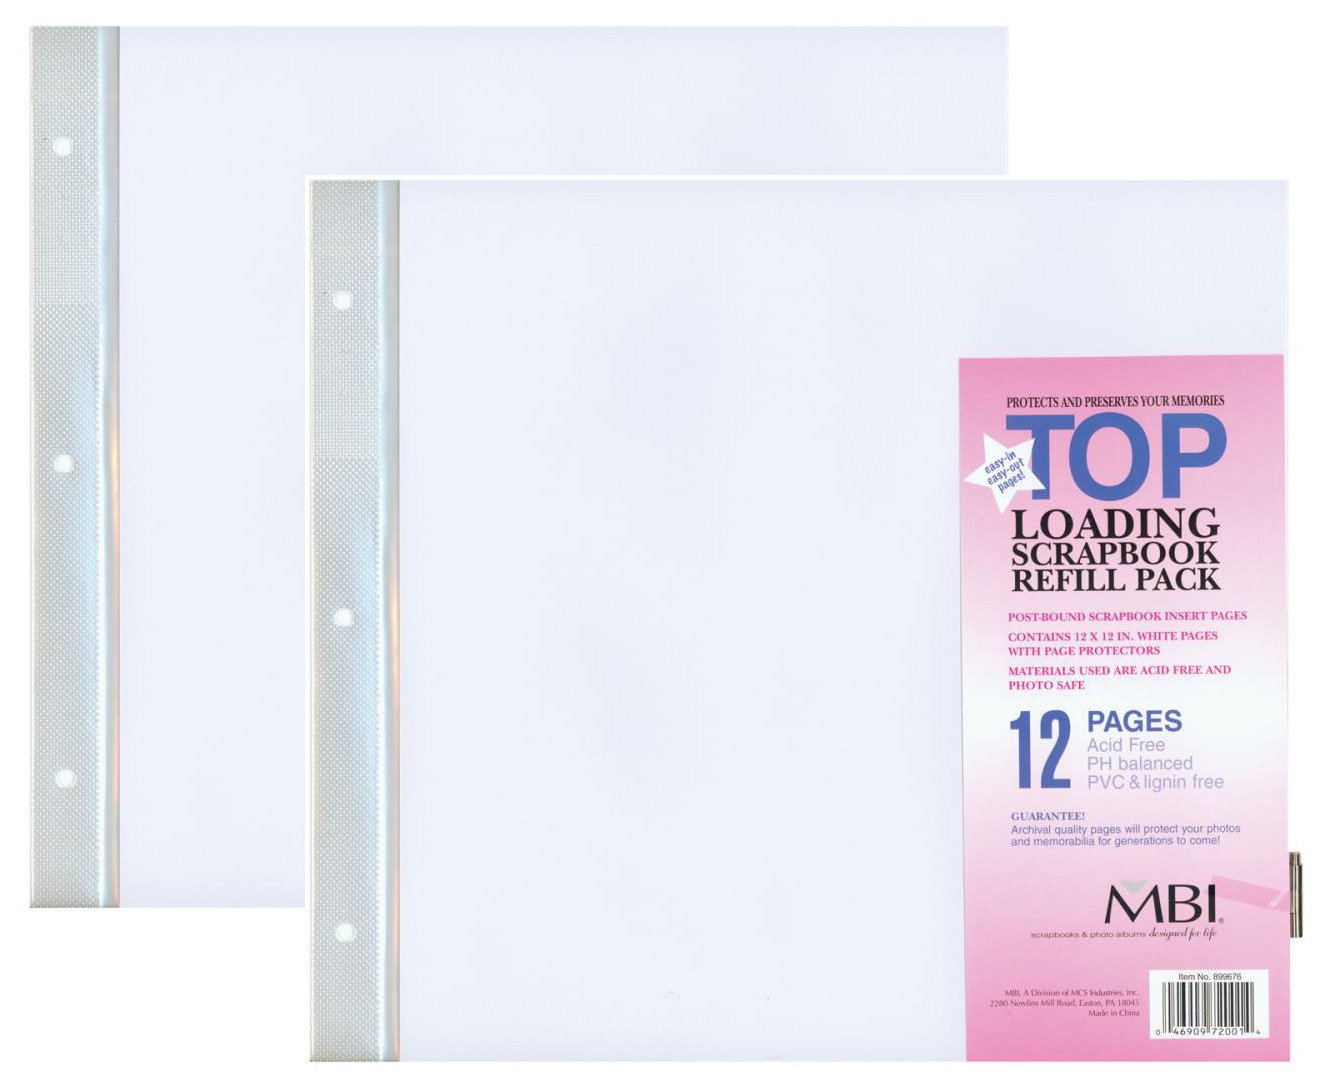 How to refill scrapbook pages - Amazon Com Mbi By Mcs 12 Inch By 12 Inch Scrapbook Expansion Pages 6 Sheet Count 12 Pages